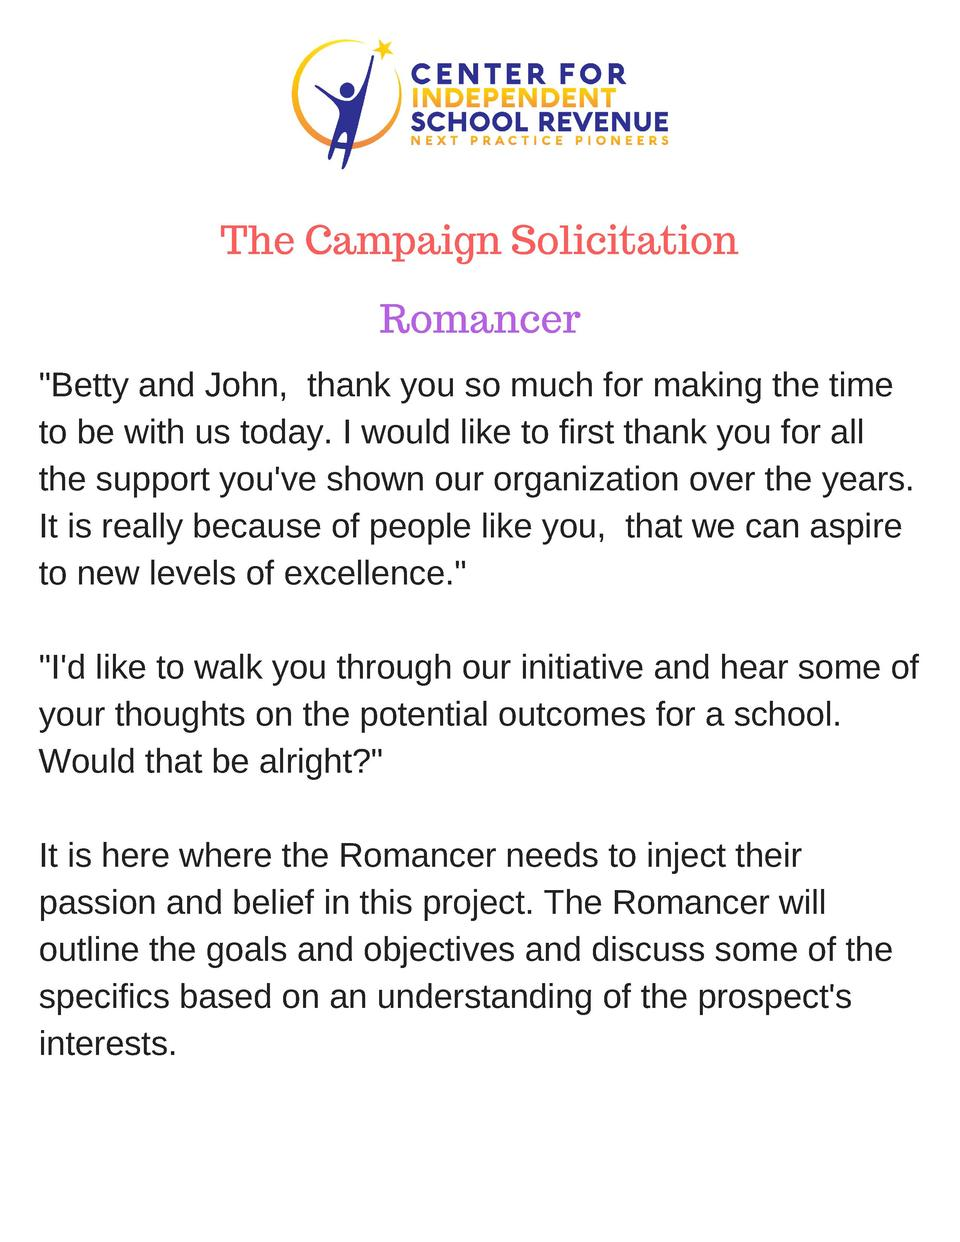 The Campaign Solicitation Romancer  Betty and John, thank you so much for making the time to be with us today. I would lik...